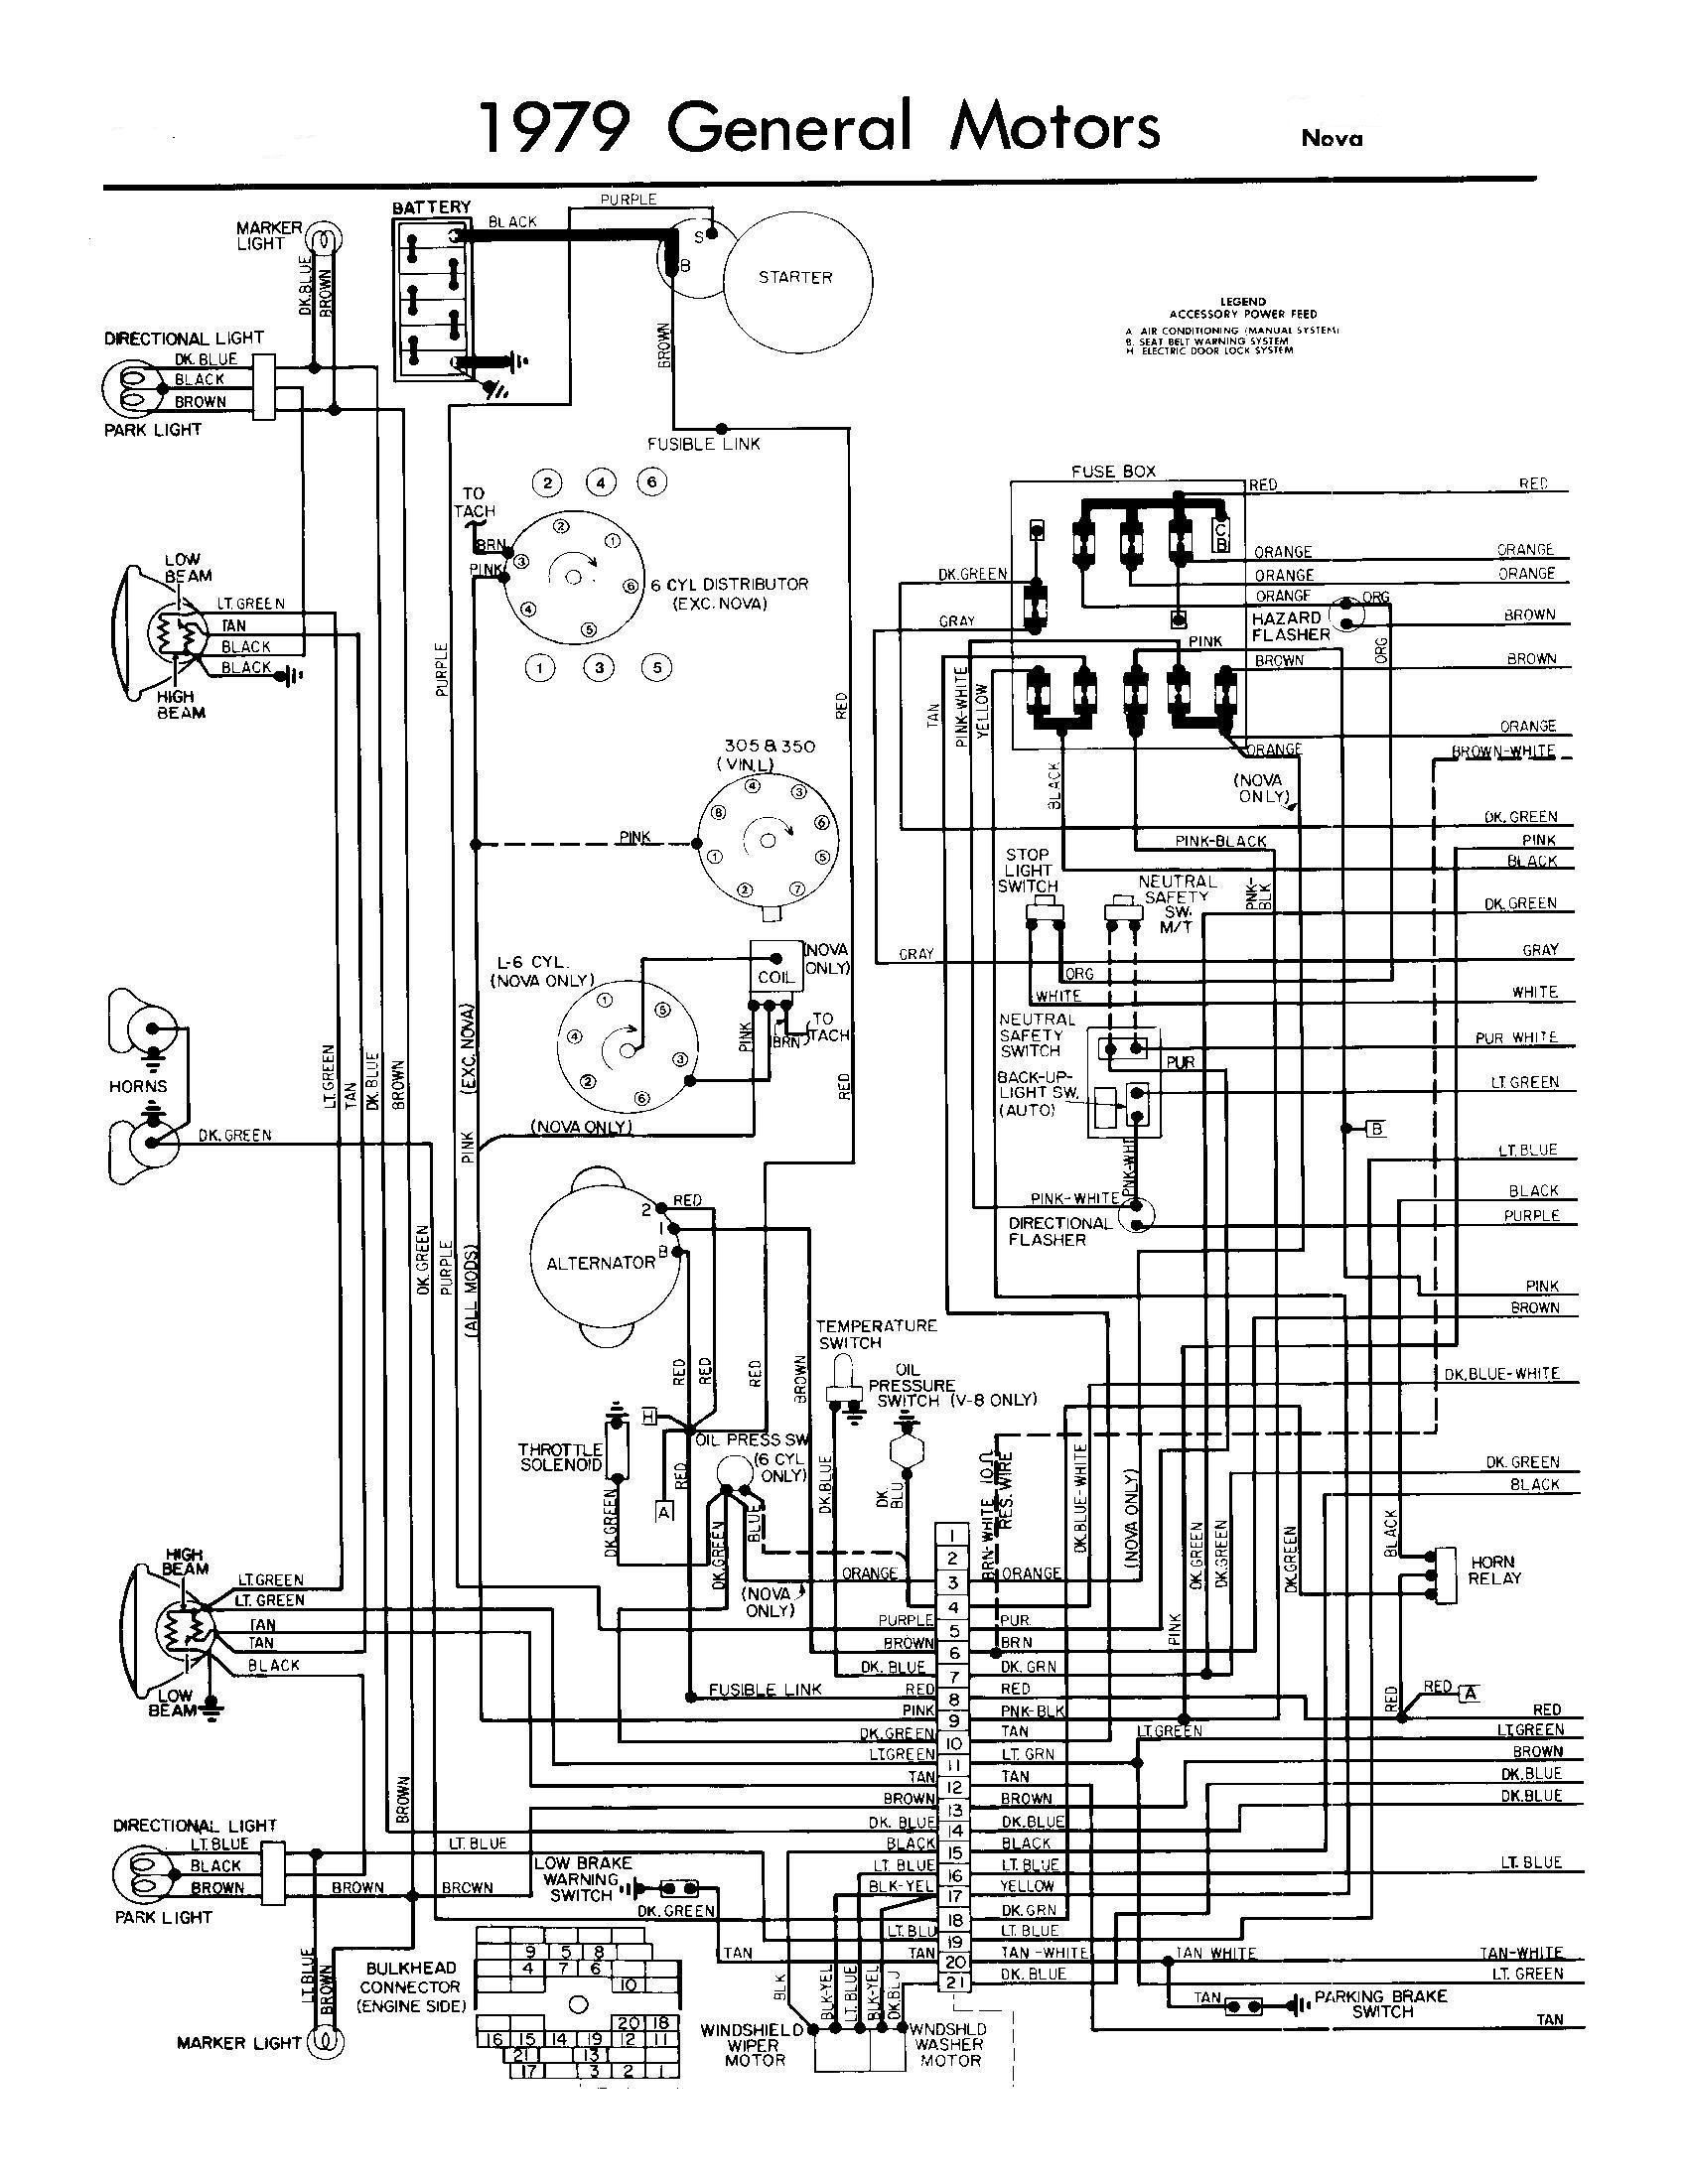 1989 gmc sierra 2500 wiring diagram